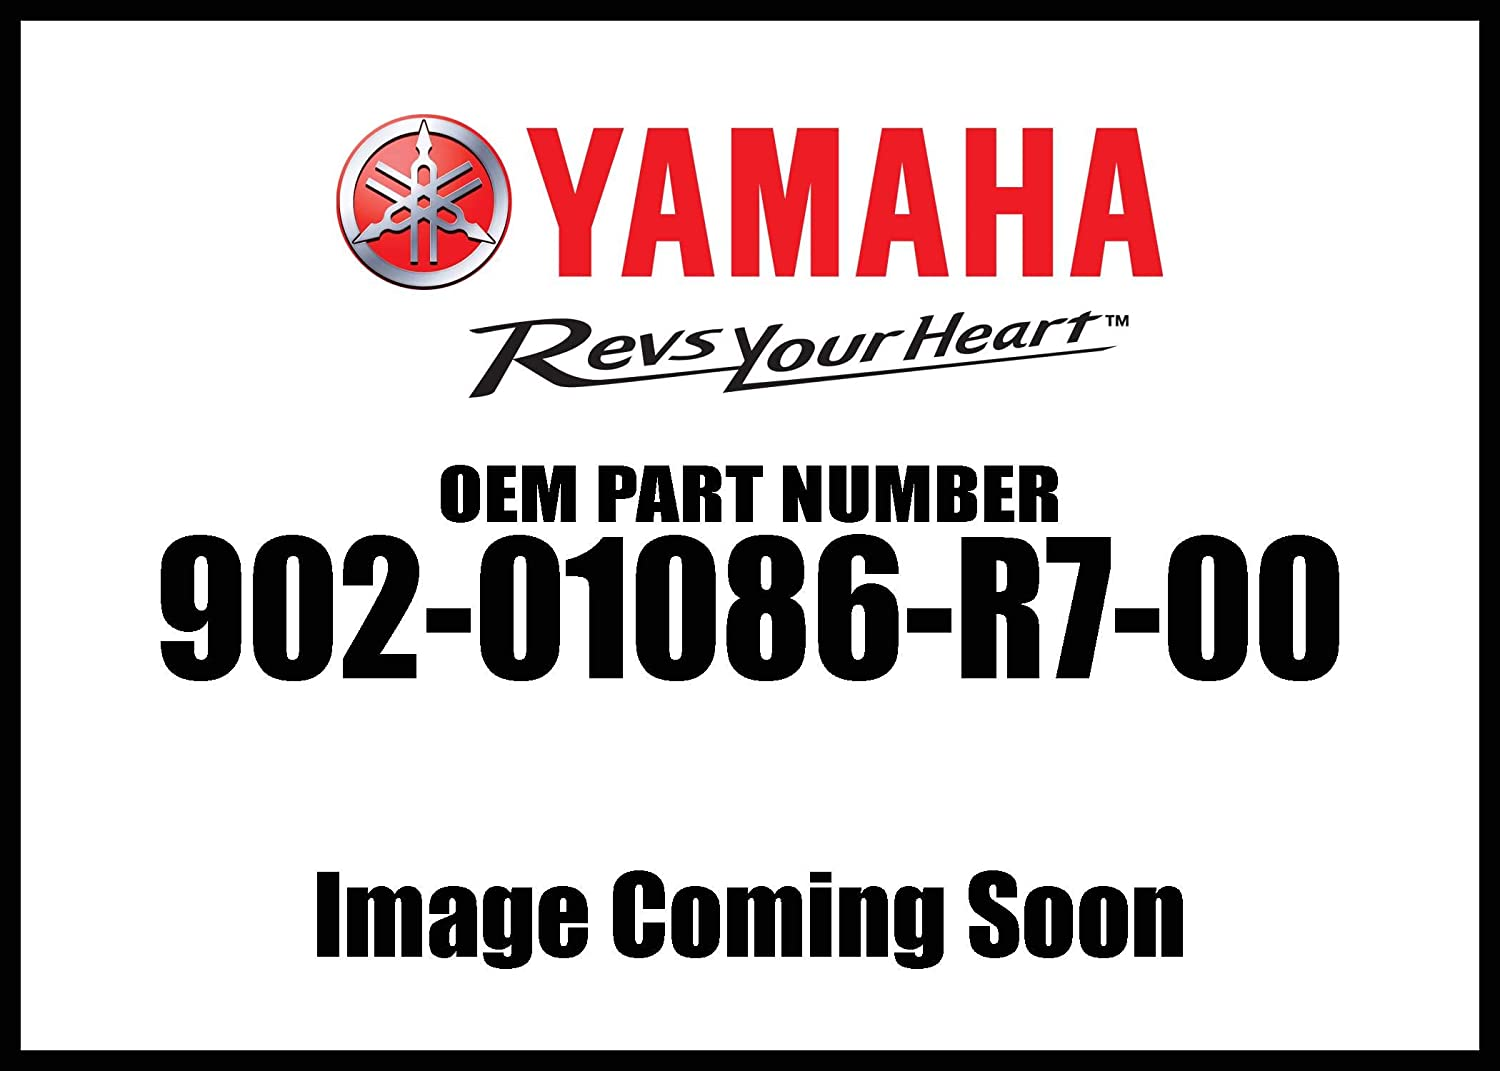 Yamaha 93306-20326-00 Bearing; New # 93306-20335-00 Made by Yamaha